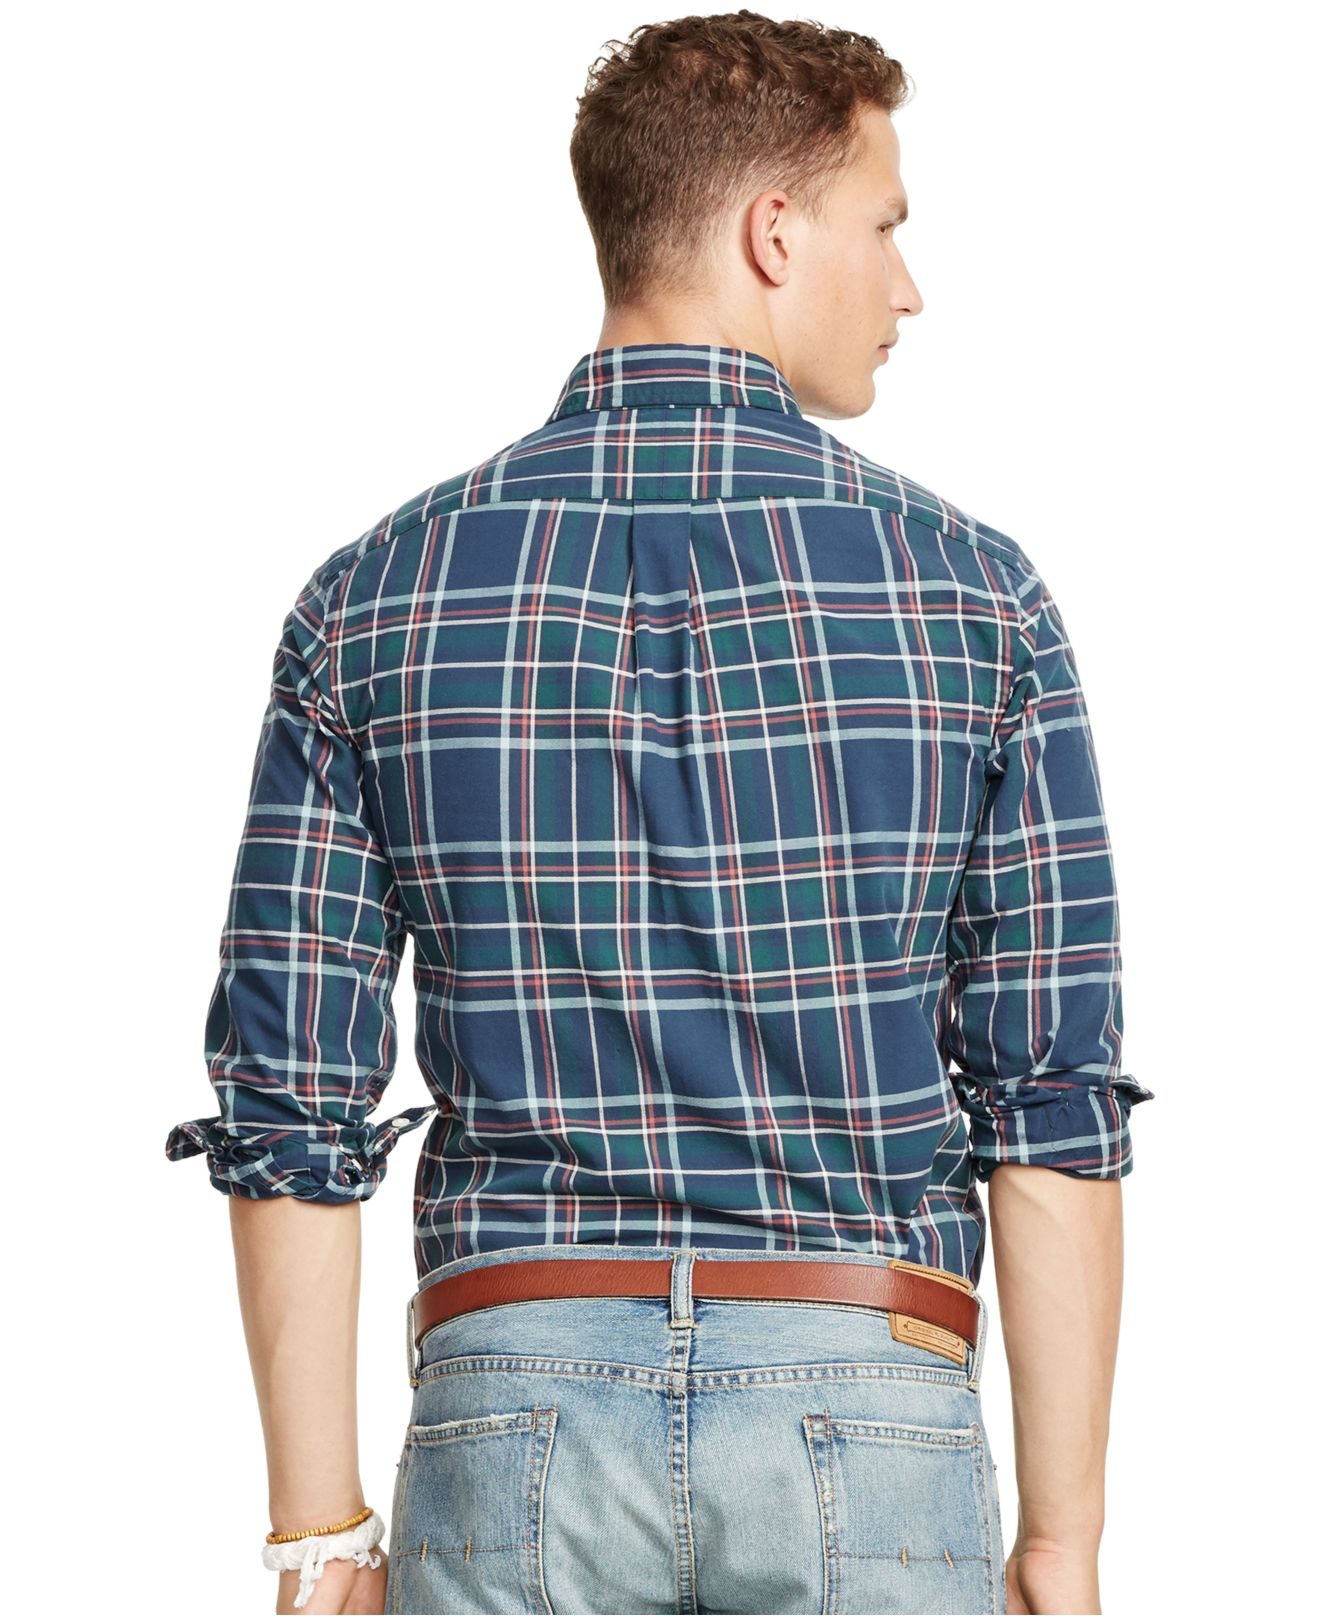 4f0a283f5945 ... shopping official lyst polo ralph lauren plaid oxford shirt in green  for men bfbb9 777ad ireland